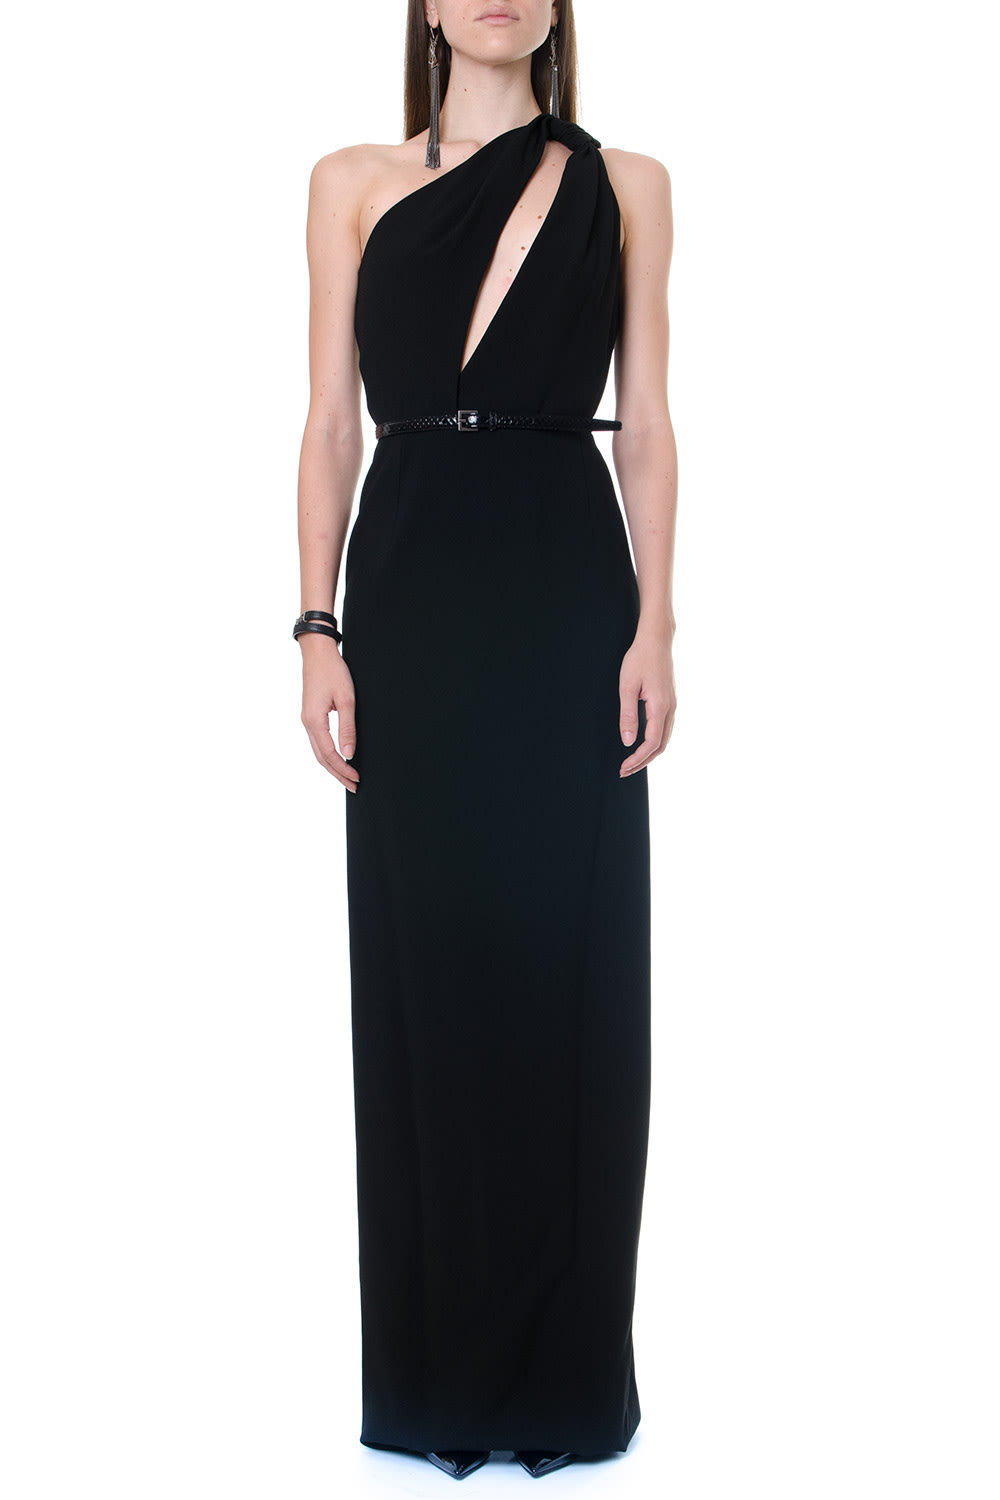 Saint Laurent Sabl?ne Shoulder Black Color Long Dress